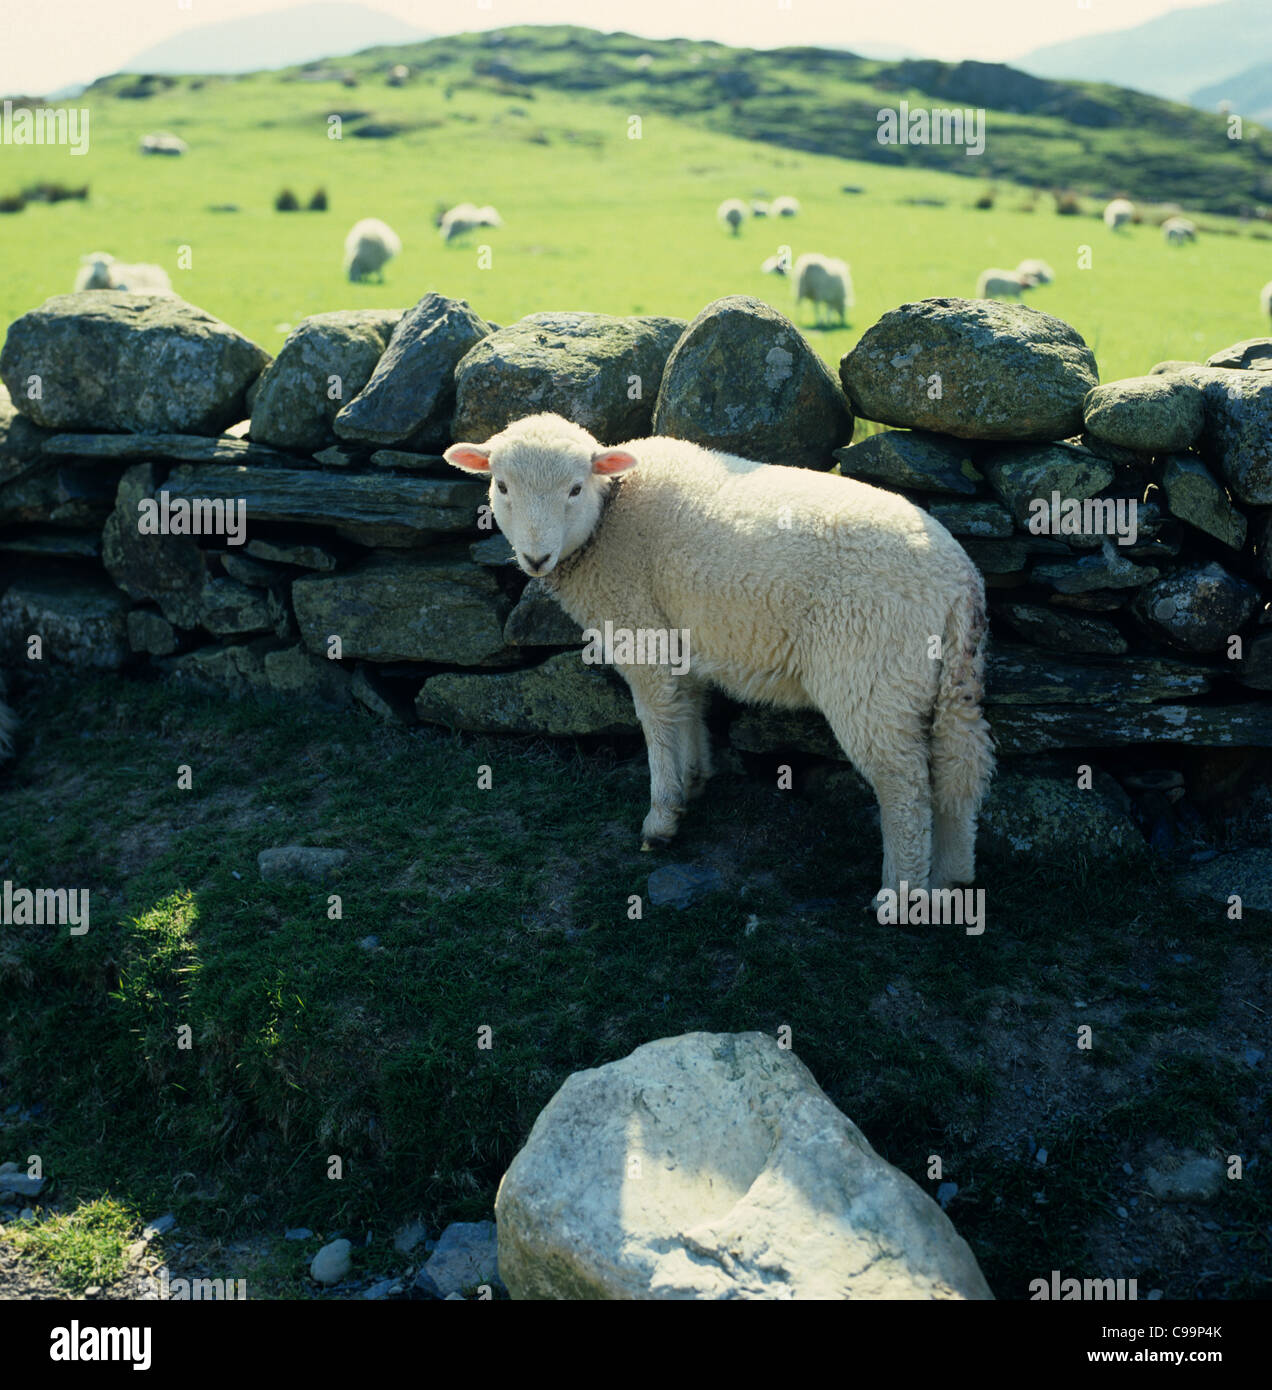 Welsh mountain sheep lamp sheltering by a dry stone wall in Snowdonia, Wales - Stock Image